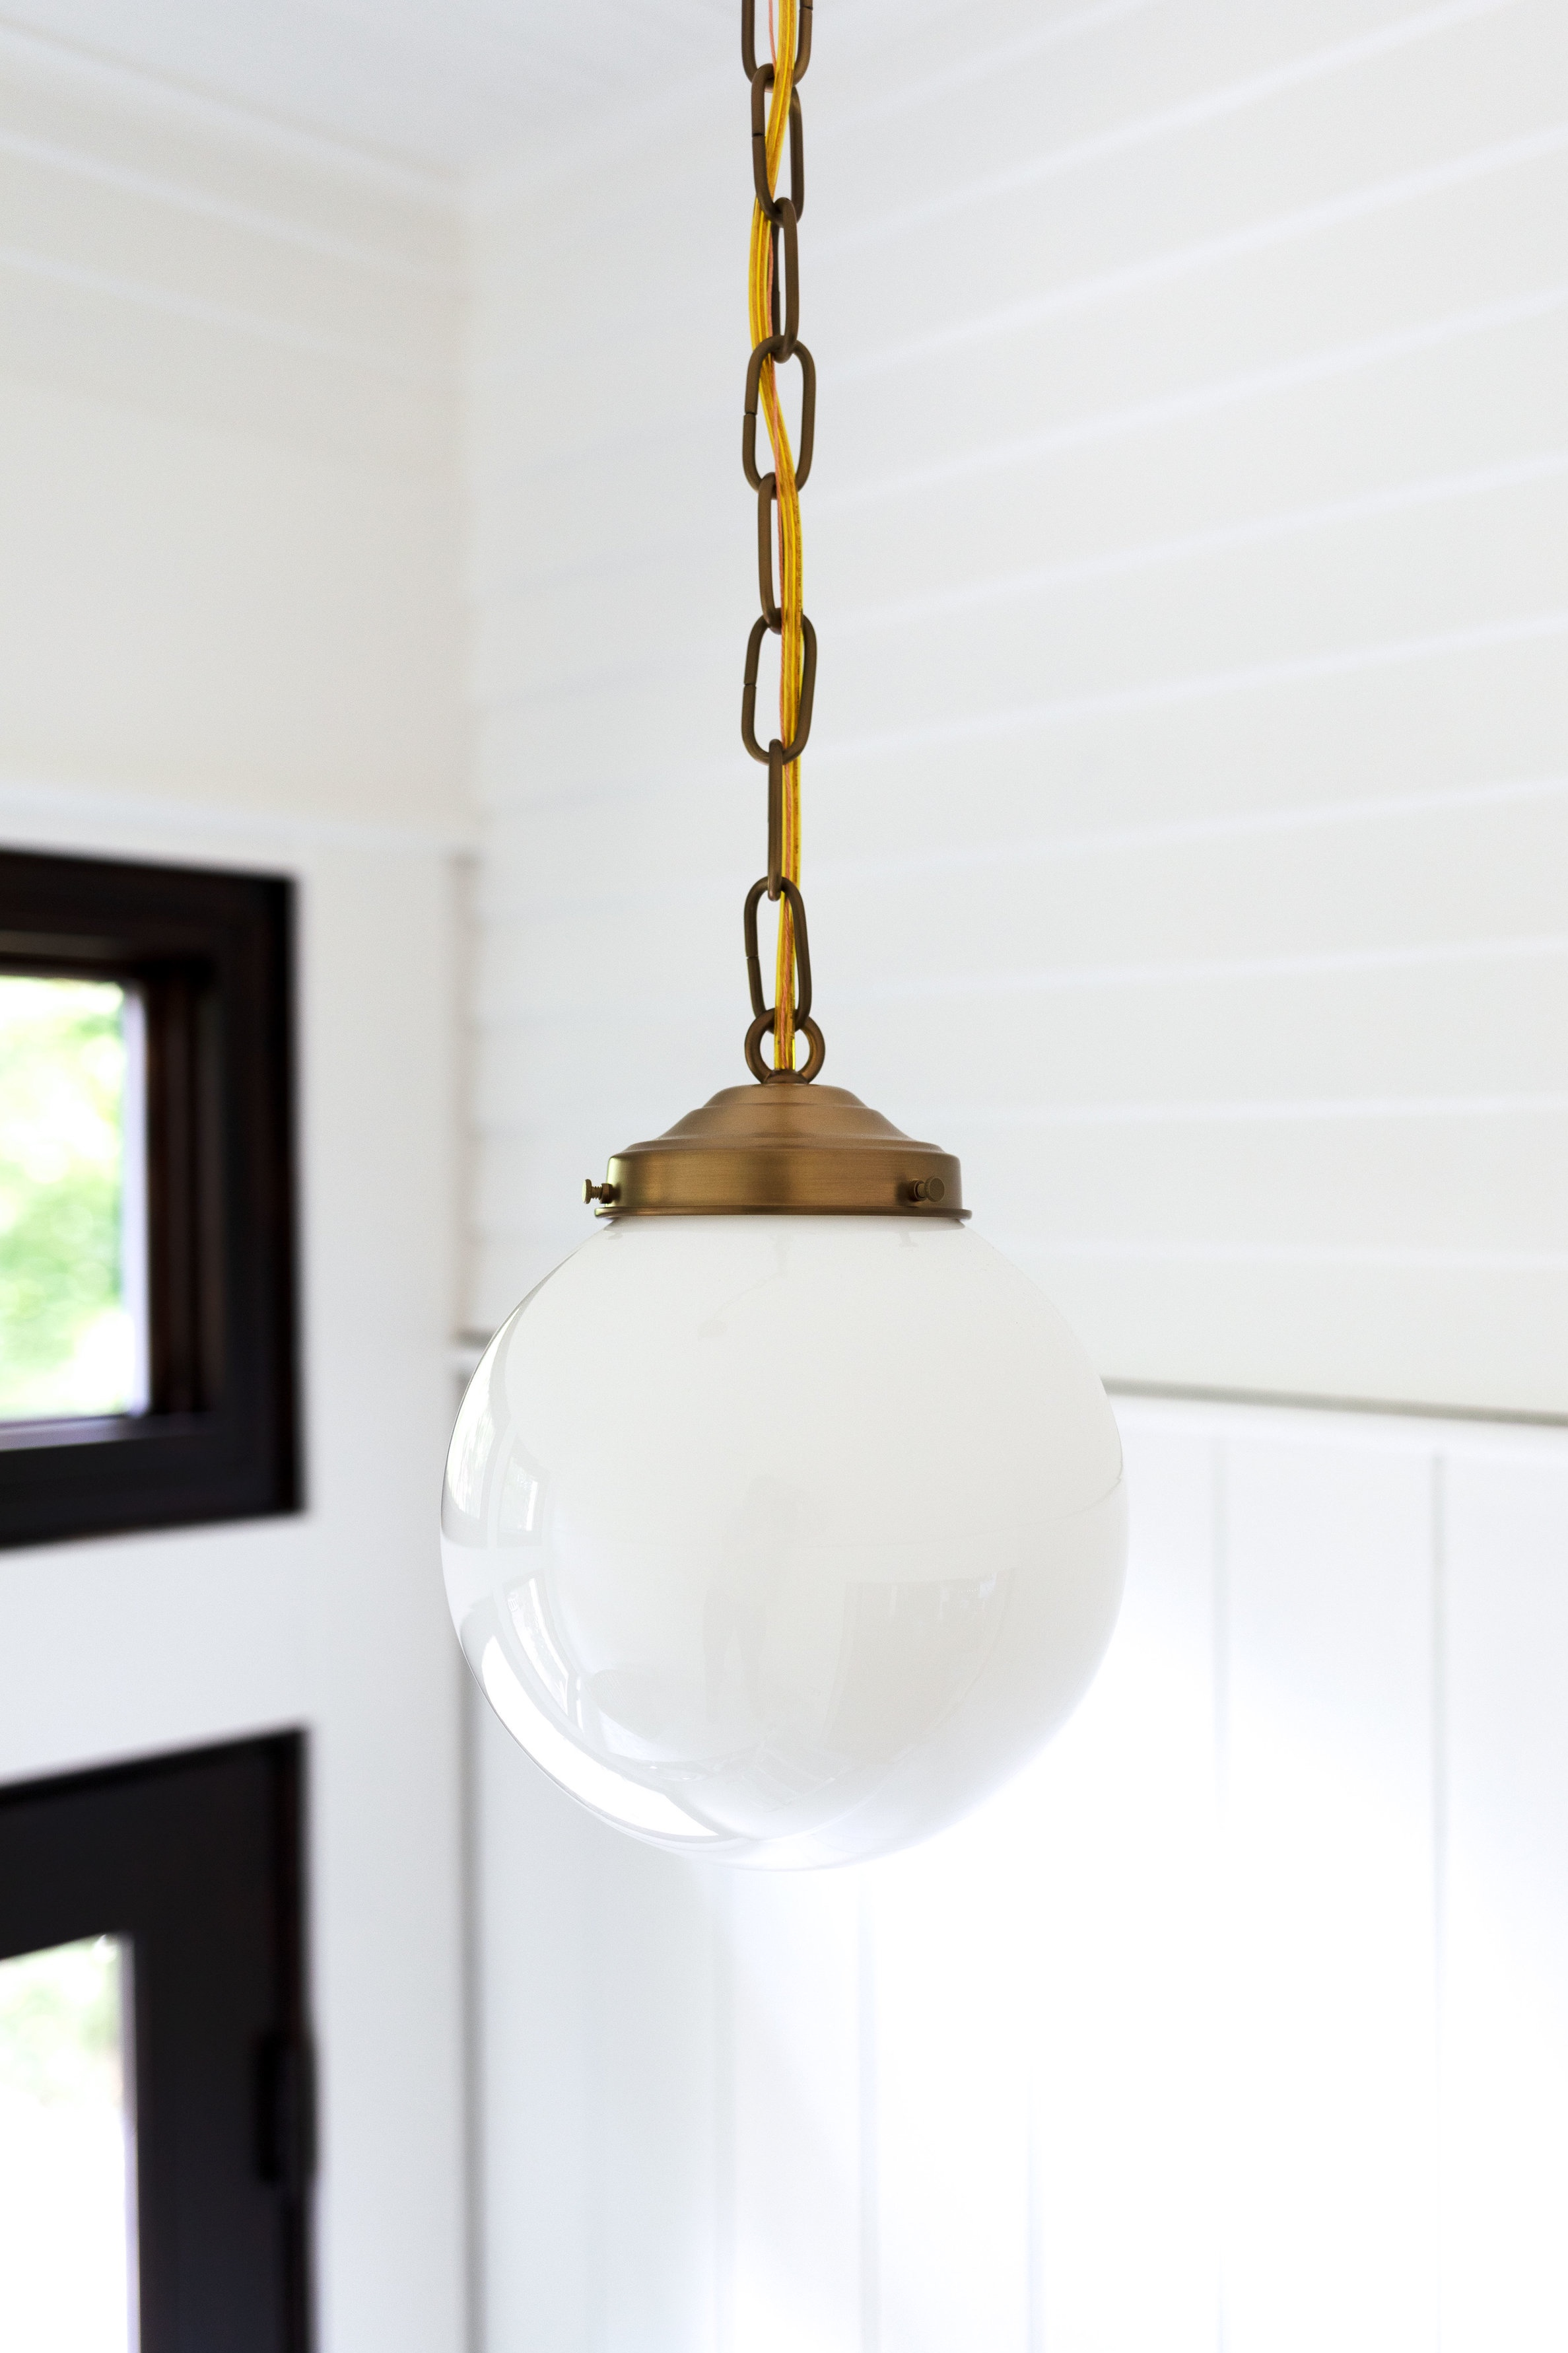 How To Center An Off Ceiling, How To Change A Dome Light Fixture Chandelier